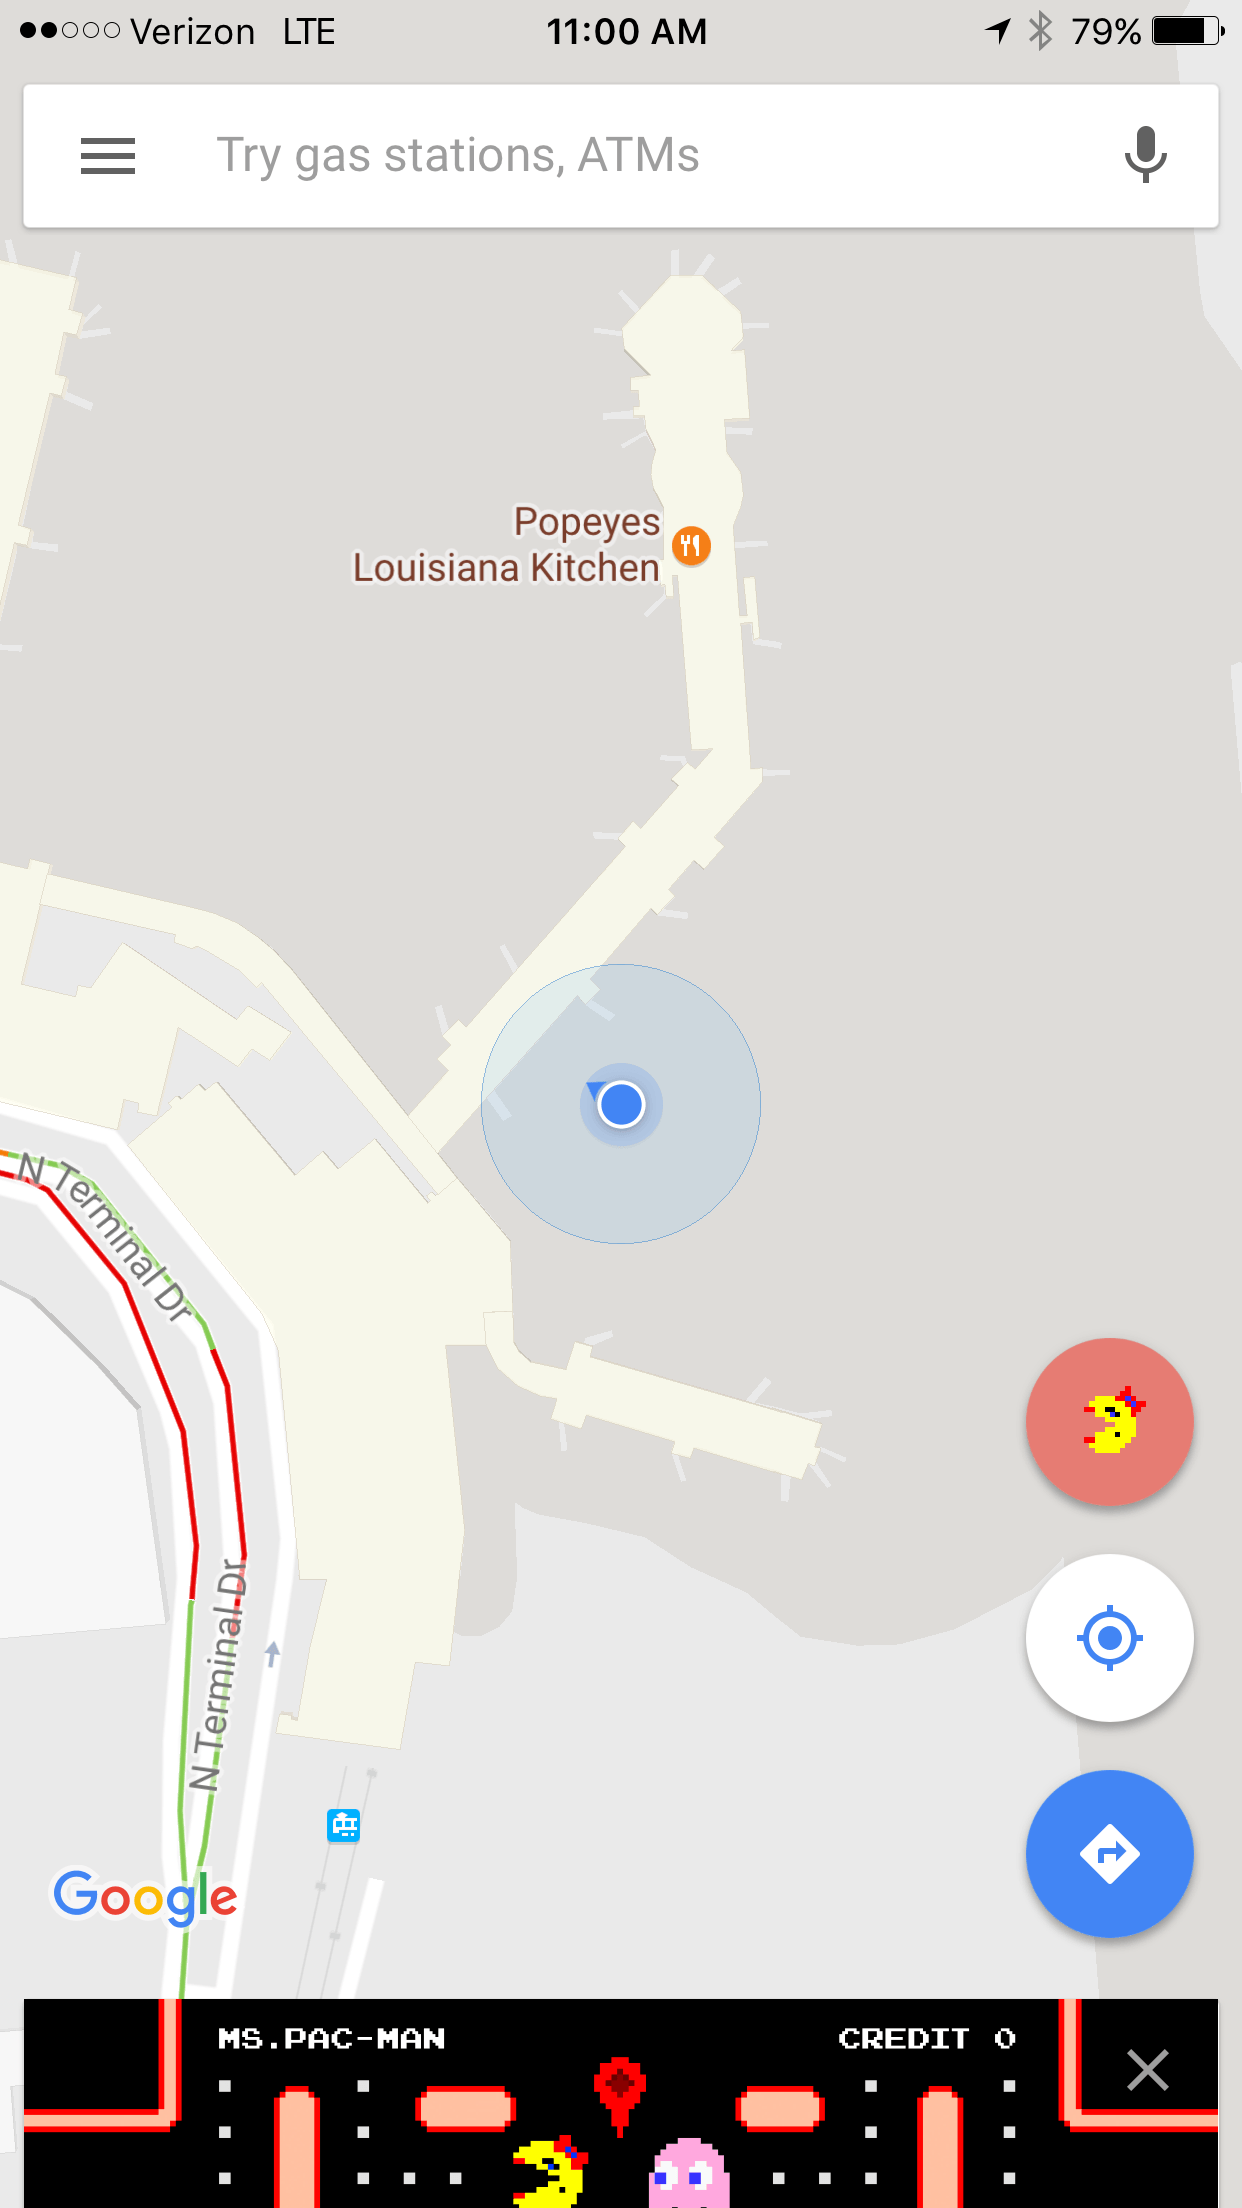 Ms  Pac-Man pays a visit to Google Maps today - SlashGear